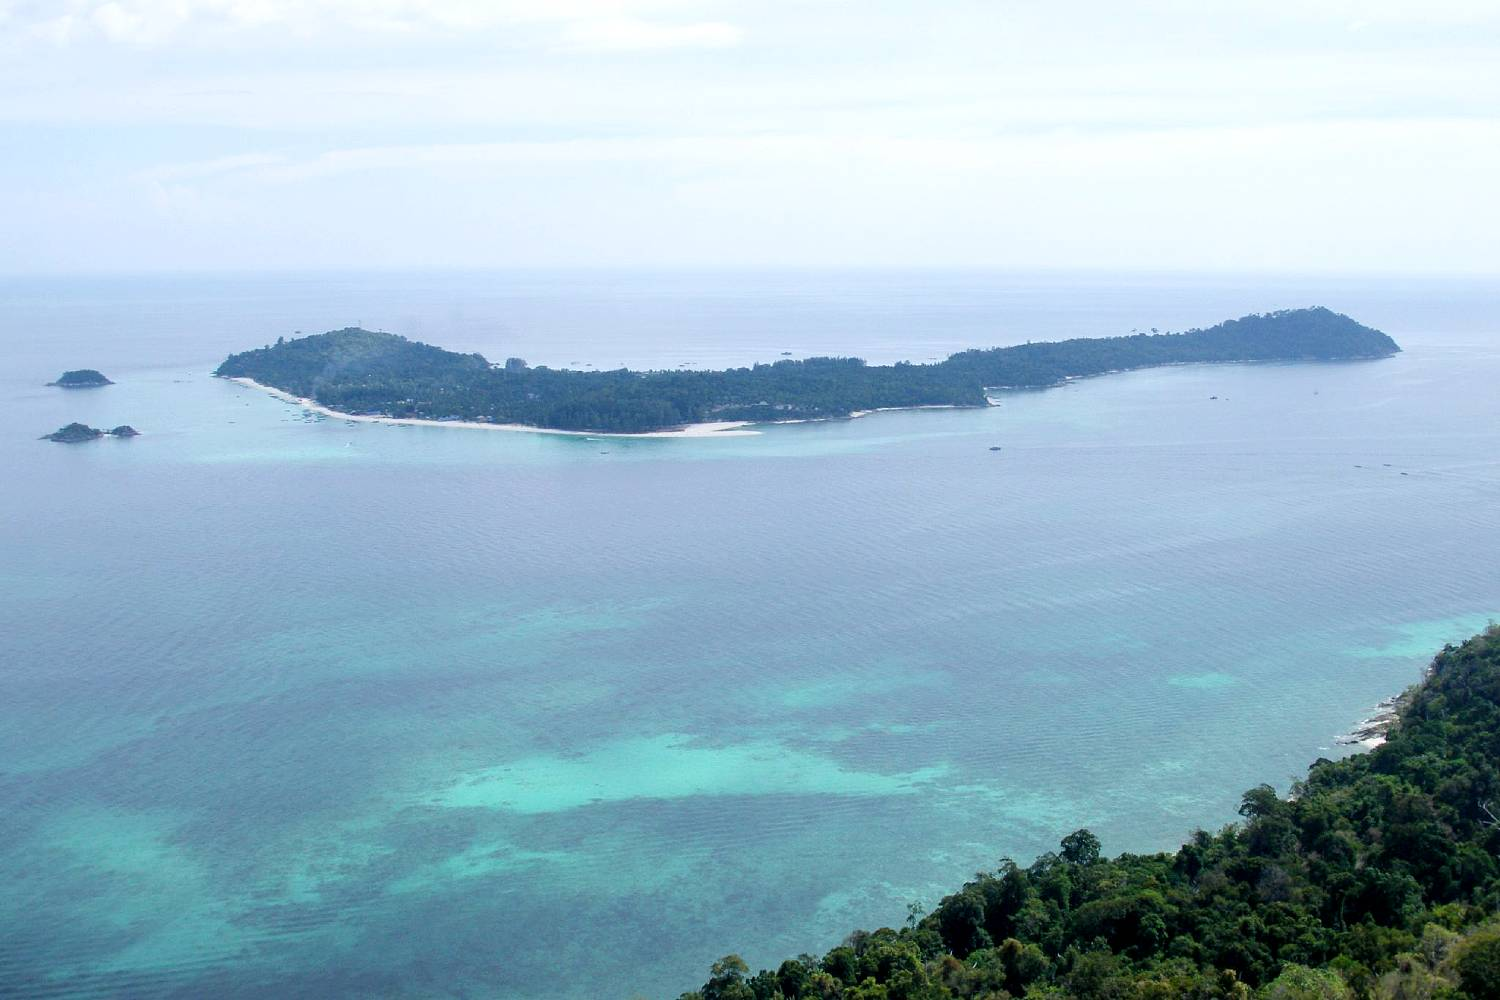 The island of Koh Lipe seen from the viewpoint on the island of Koh Adang